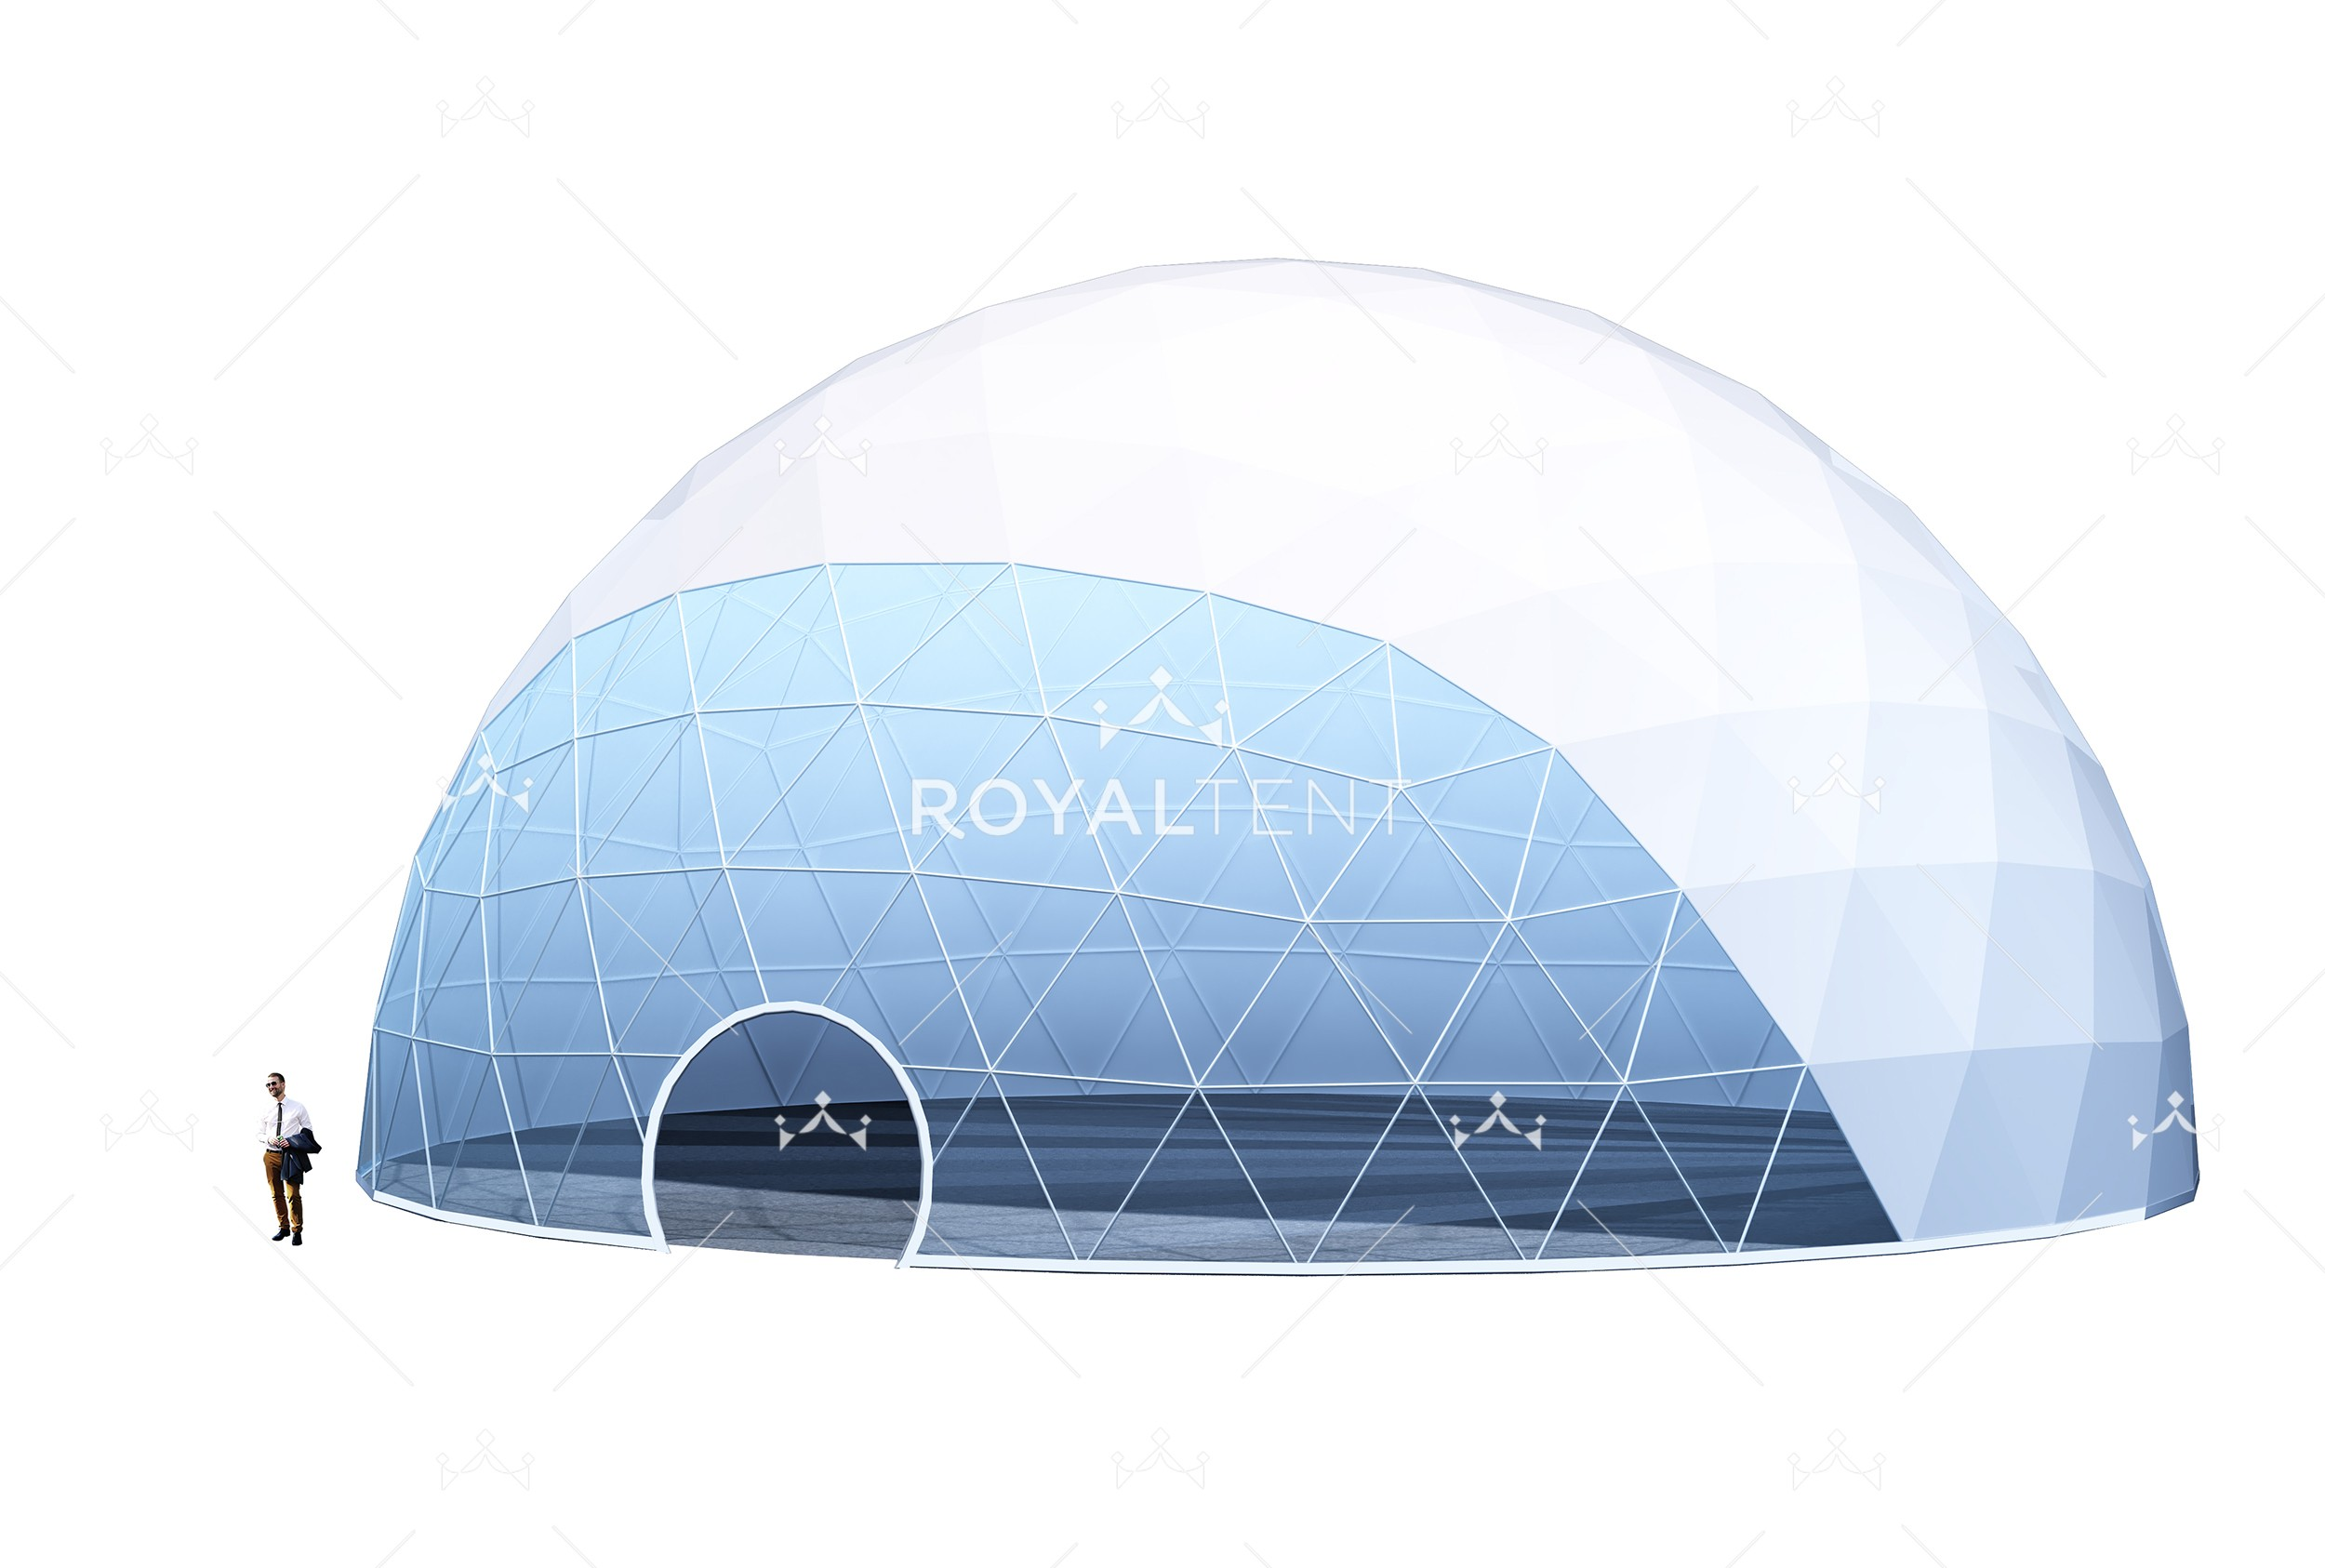 https://royaltent.me/houses_images/tent10_5_200111152810.jpg